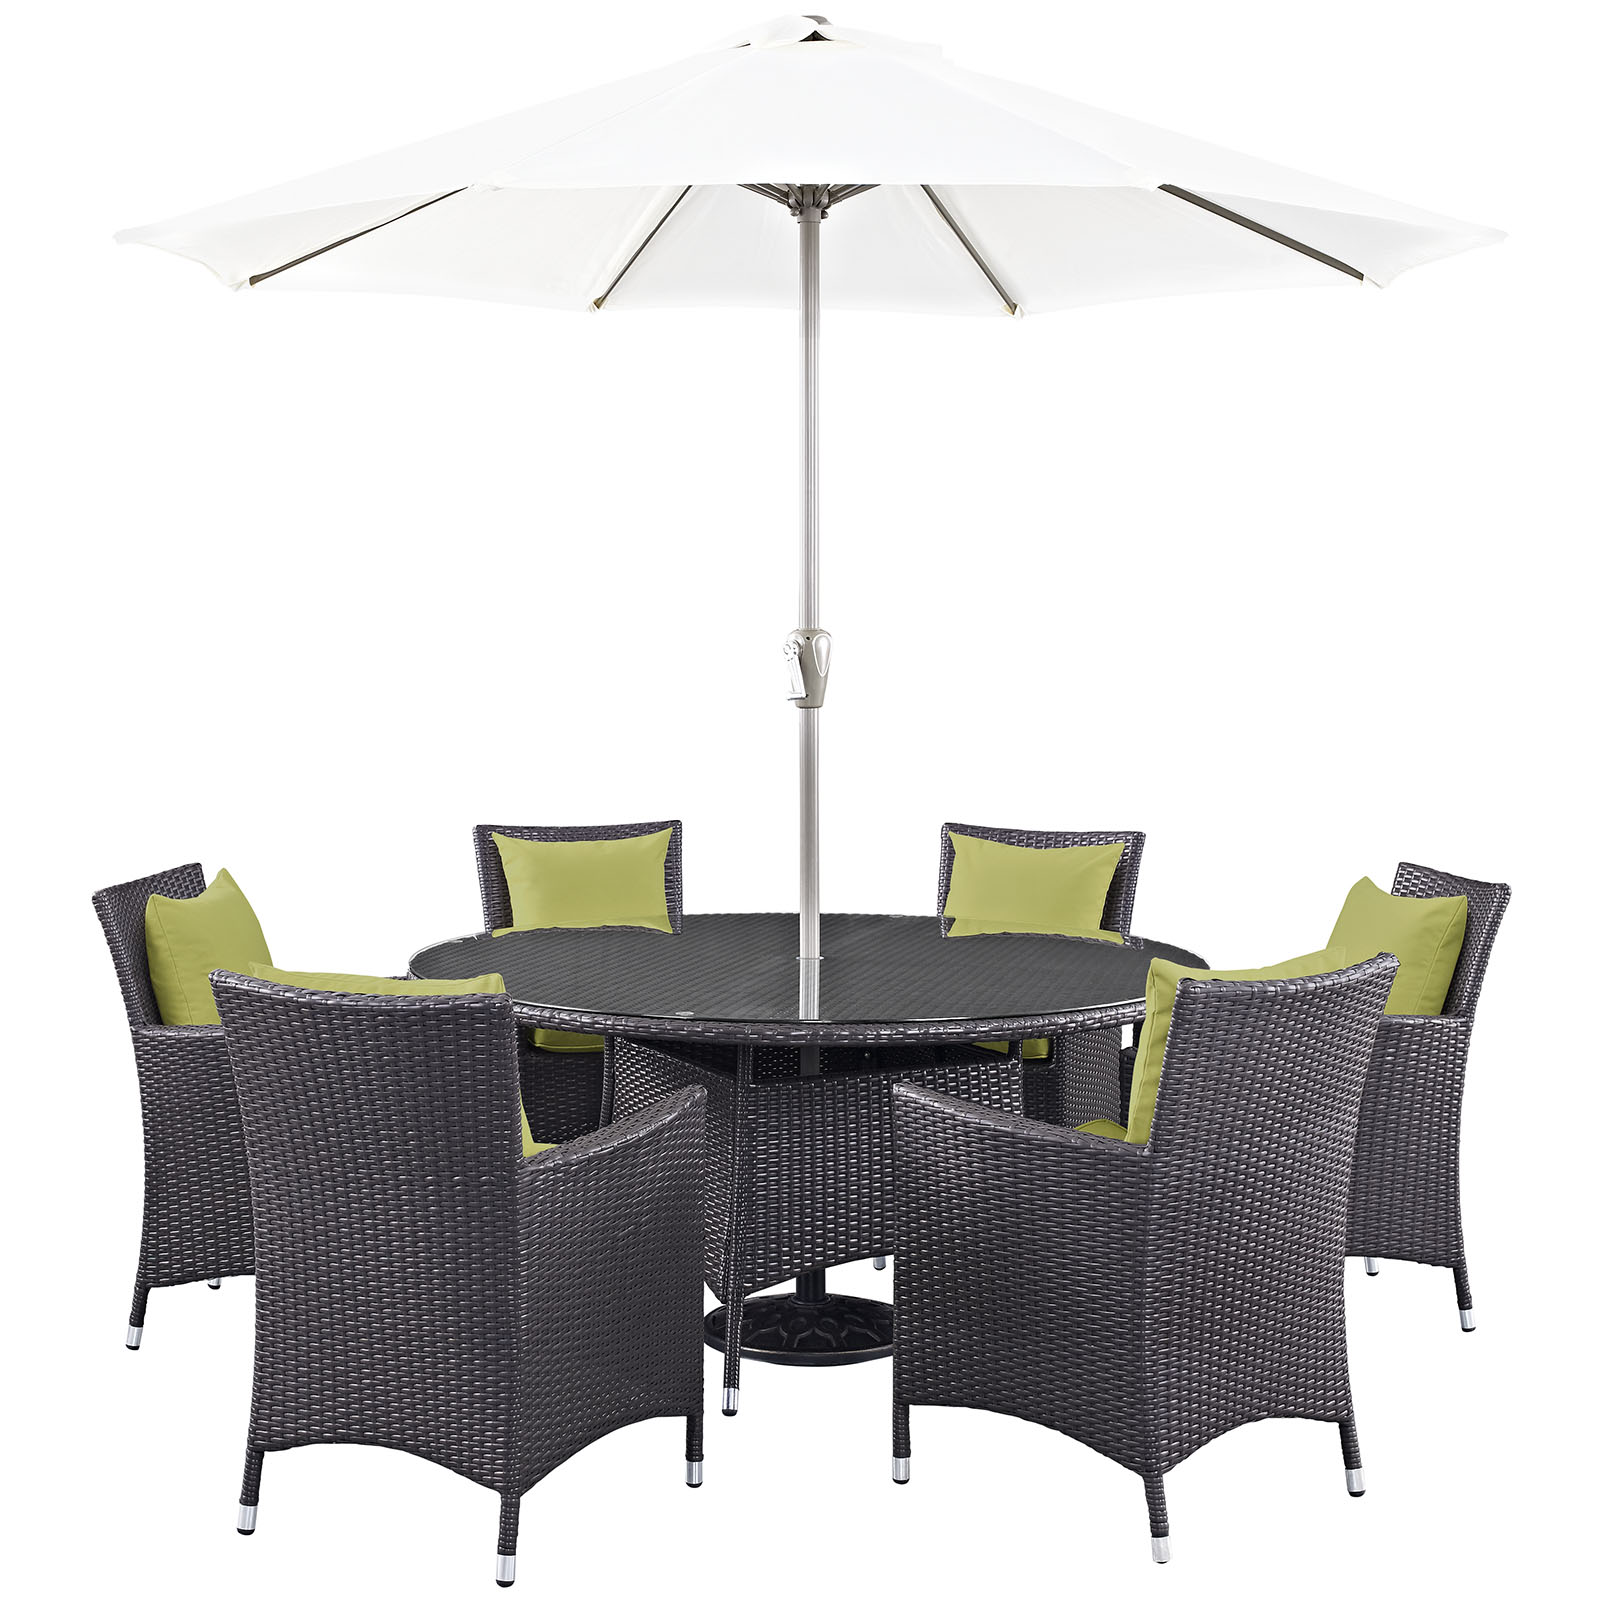 Modern Contemporary Urban Design Outdoor Patio Balcony Eight PCS Dining Chairs and Table Set, Green, Rattan